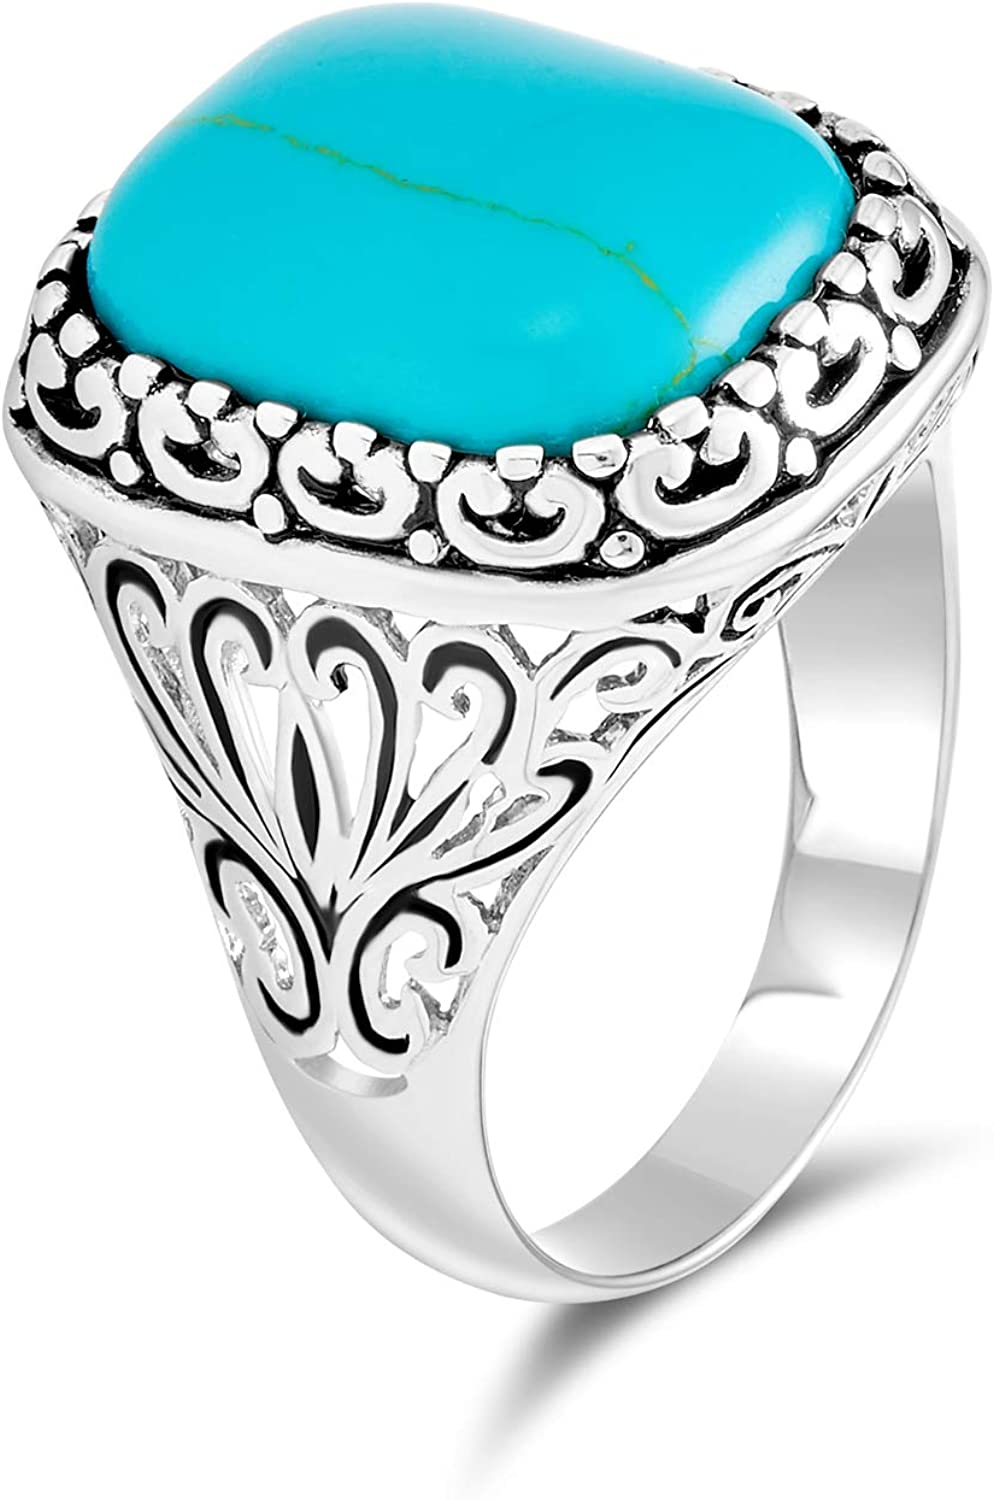 Natural Turquoise Stone  Sz 4 Rustic Unusual Abstract Turquoise and Sterling Silver Ring Created from a Fork with a Large